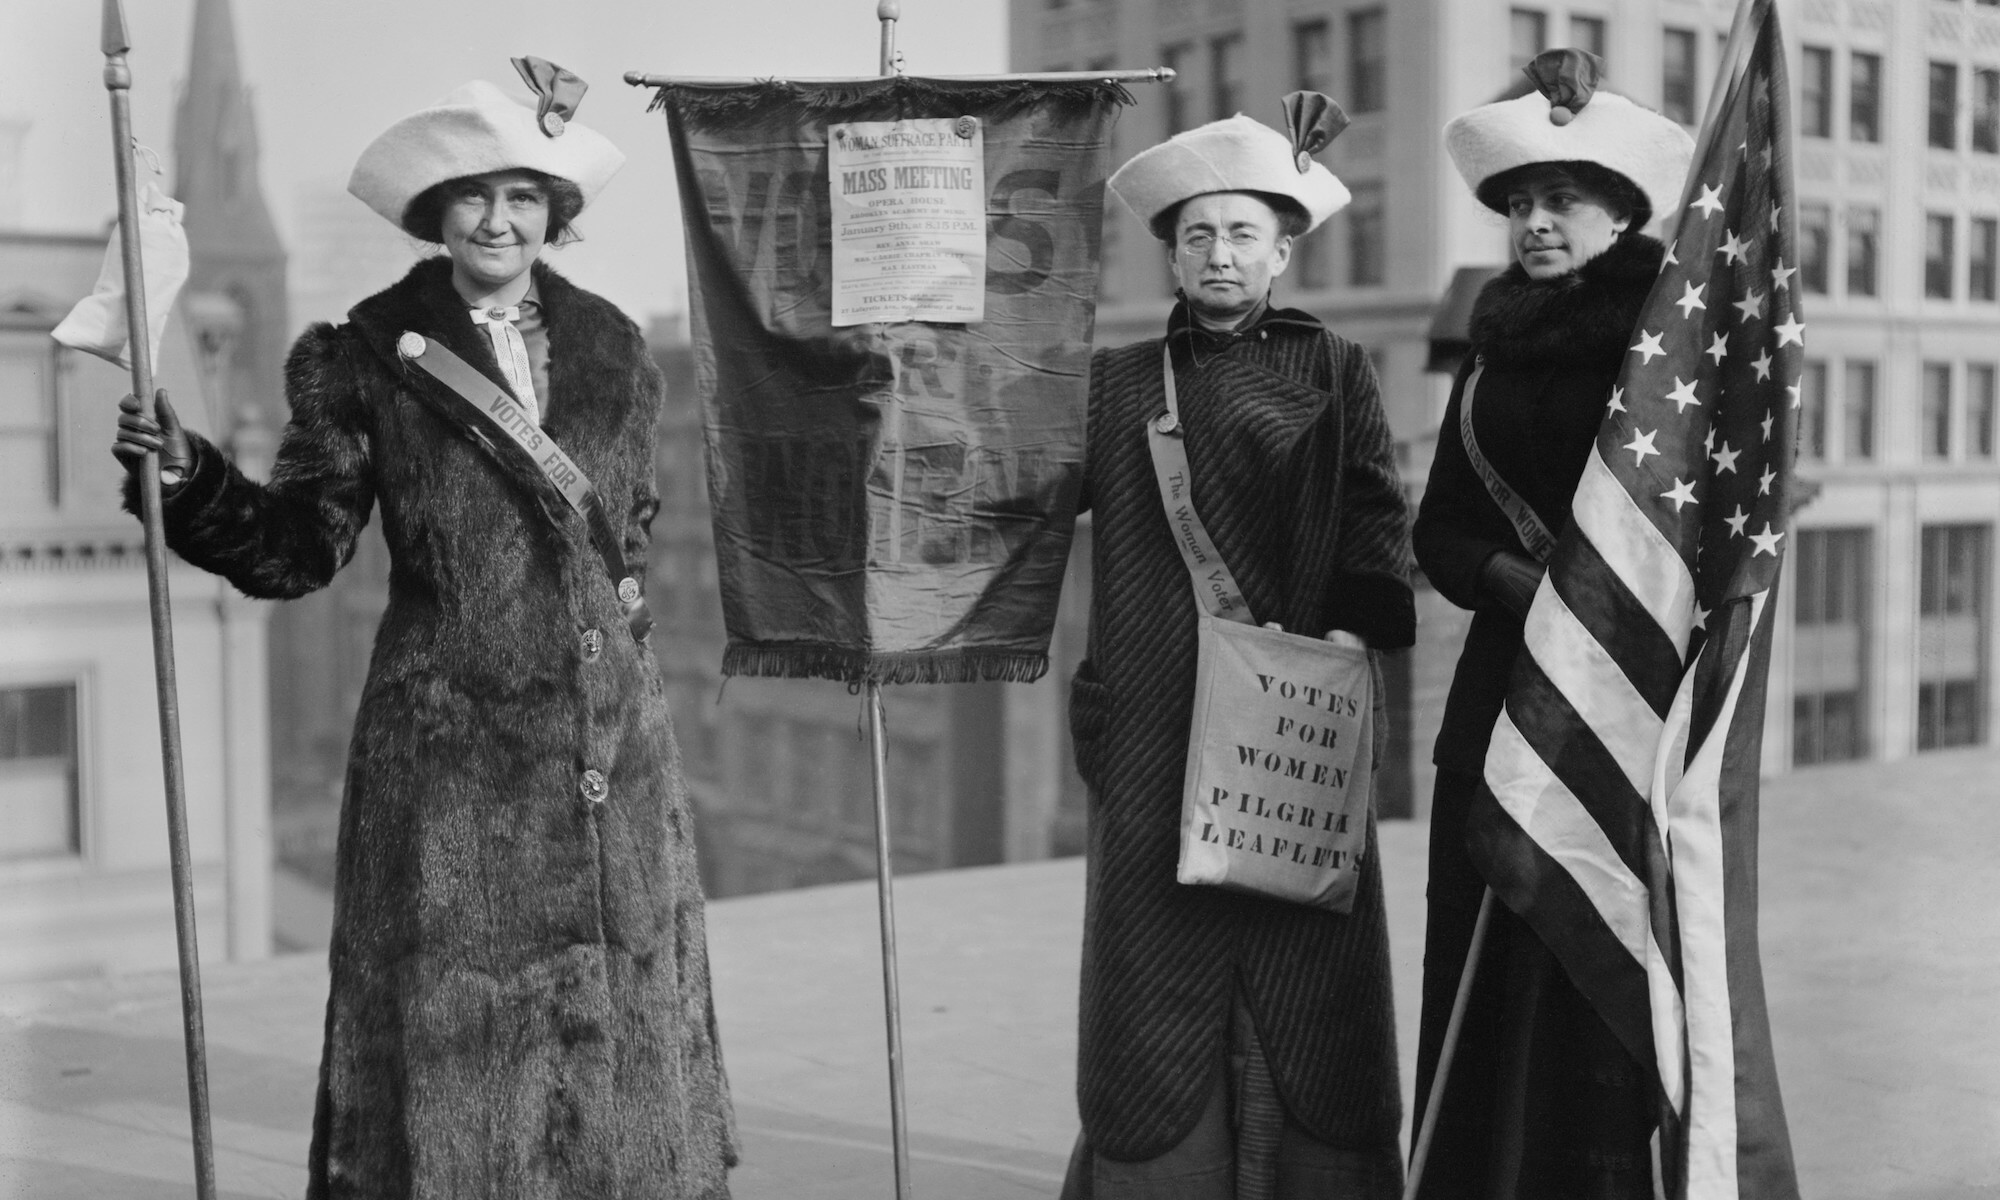 Three suffragettes demonstrate in New York City to promote Suffrage Hike of 1912 from Manhattan to Albany and distribute their VOTES FOR WOMEN PILGRIM leaflets.